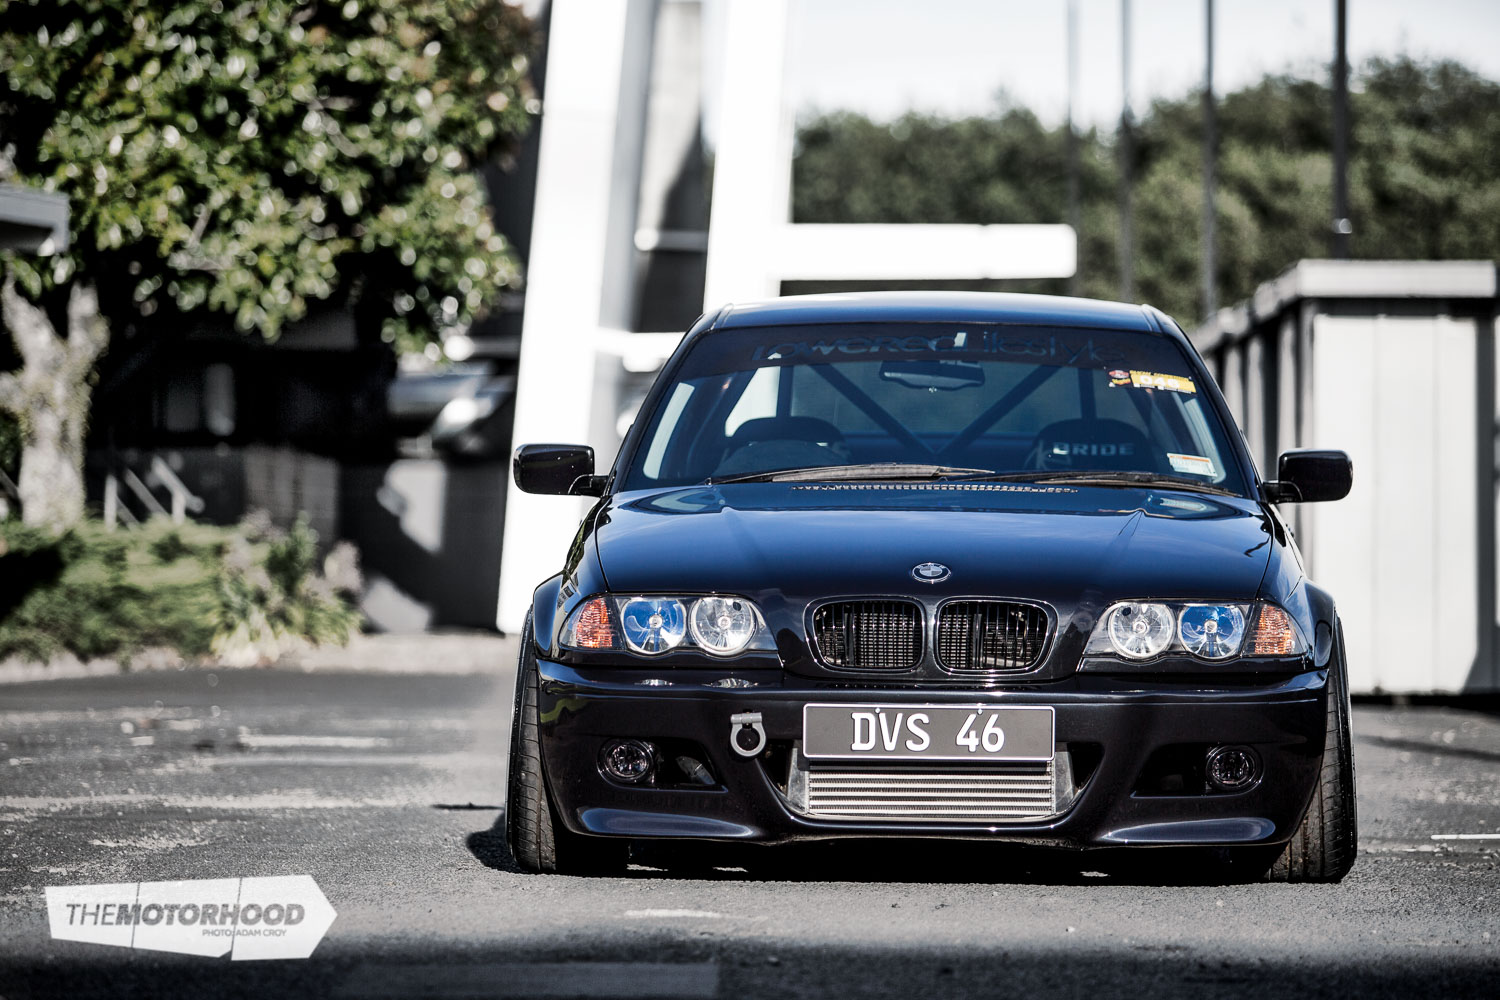 Euro speed: Jesse Remkes' mental 2JZ-powered E46 streeter